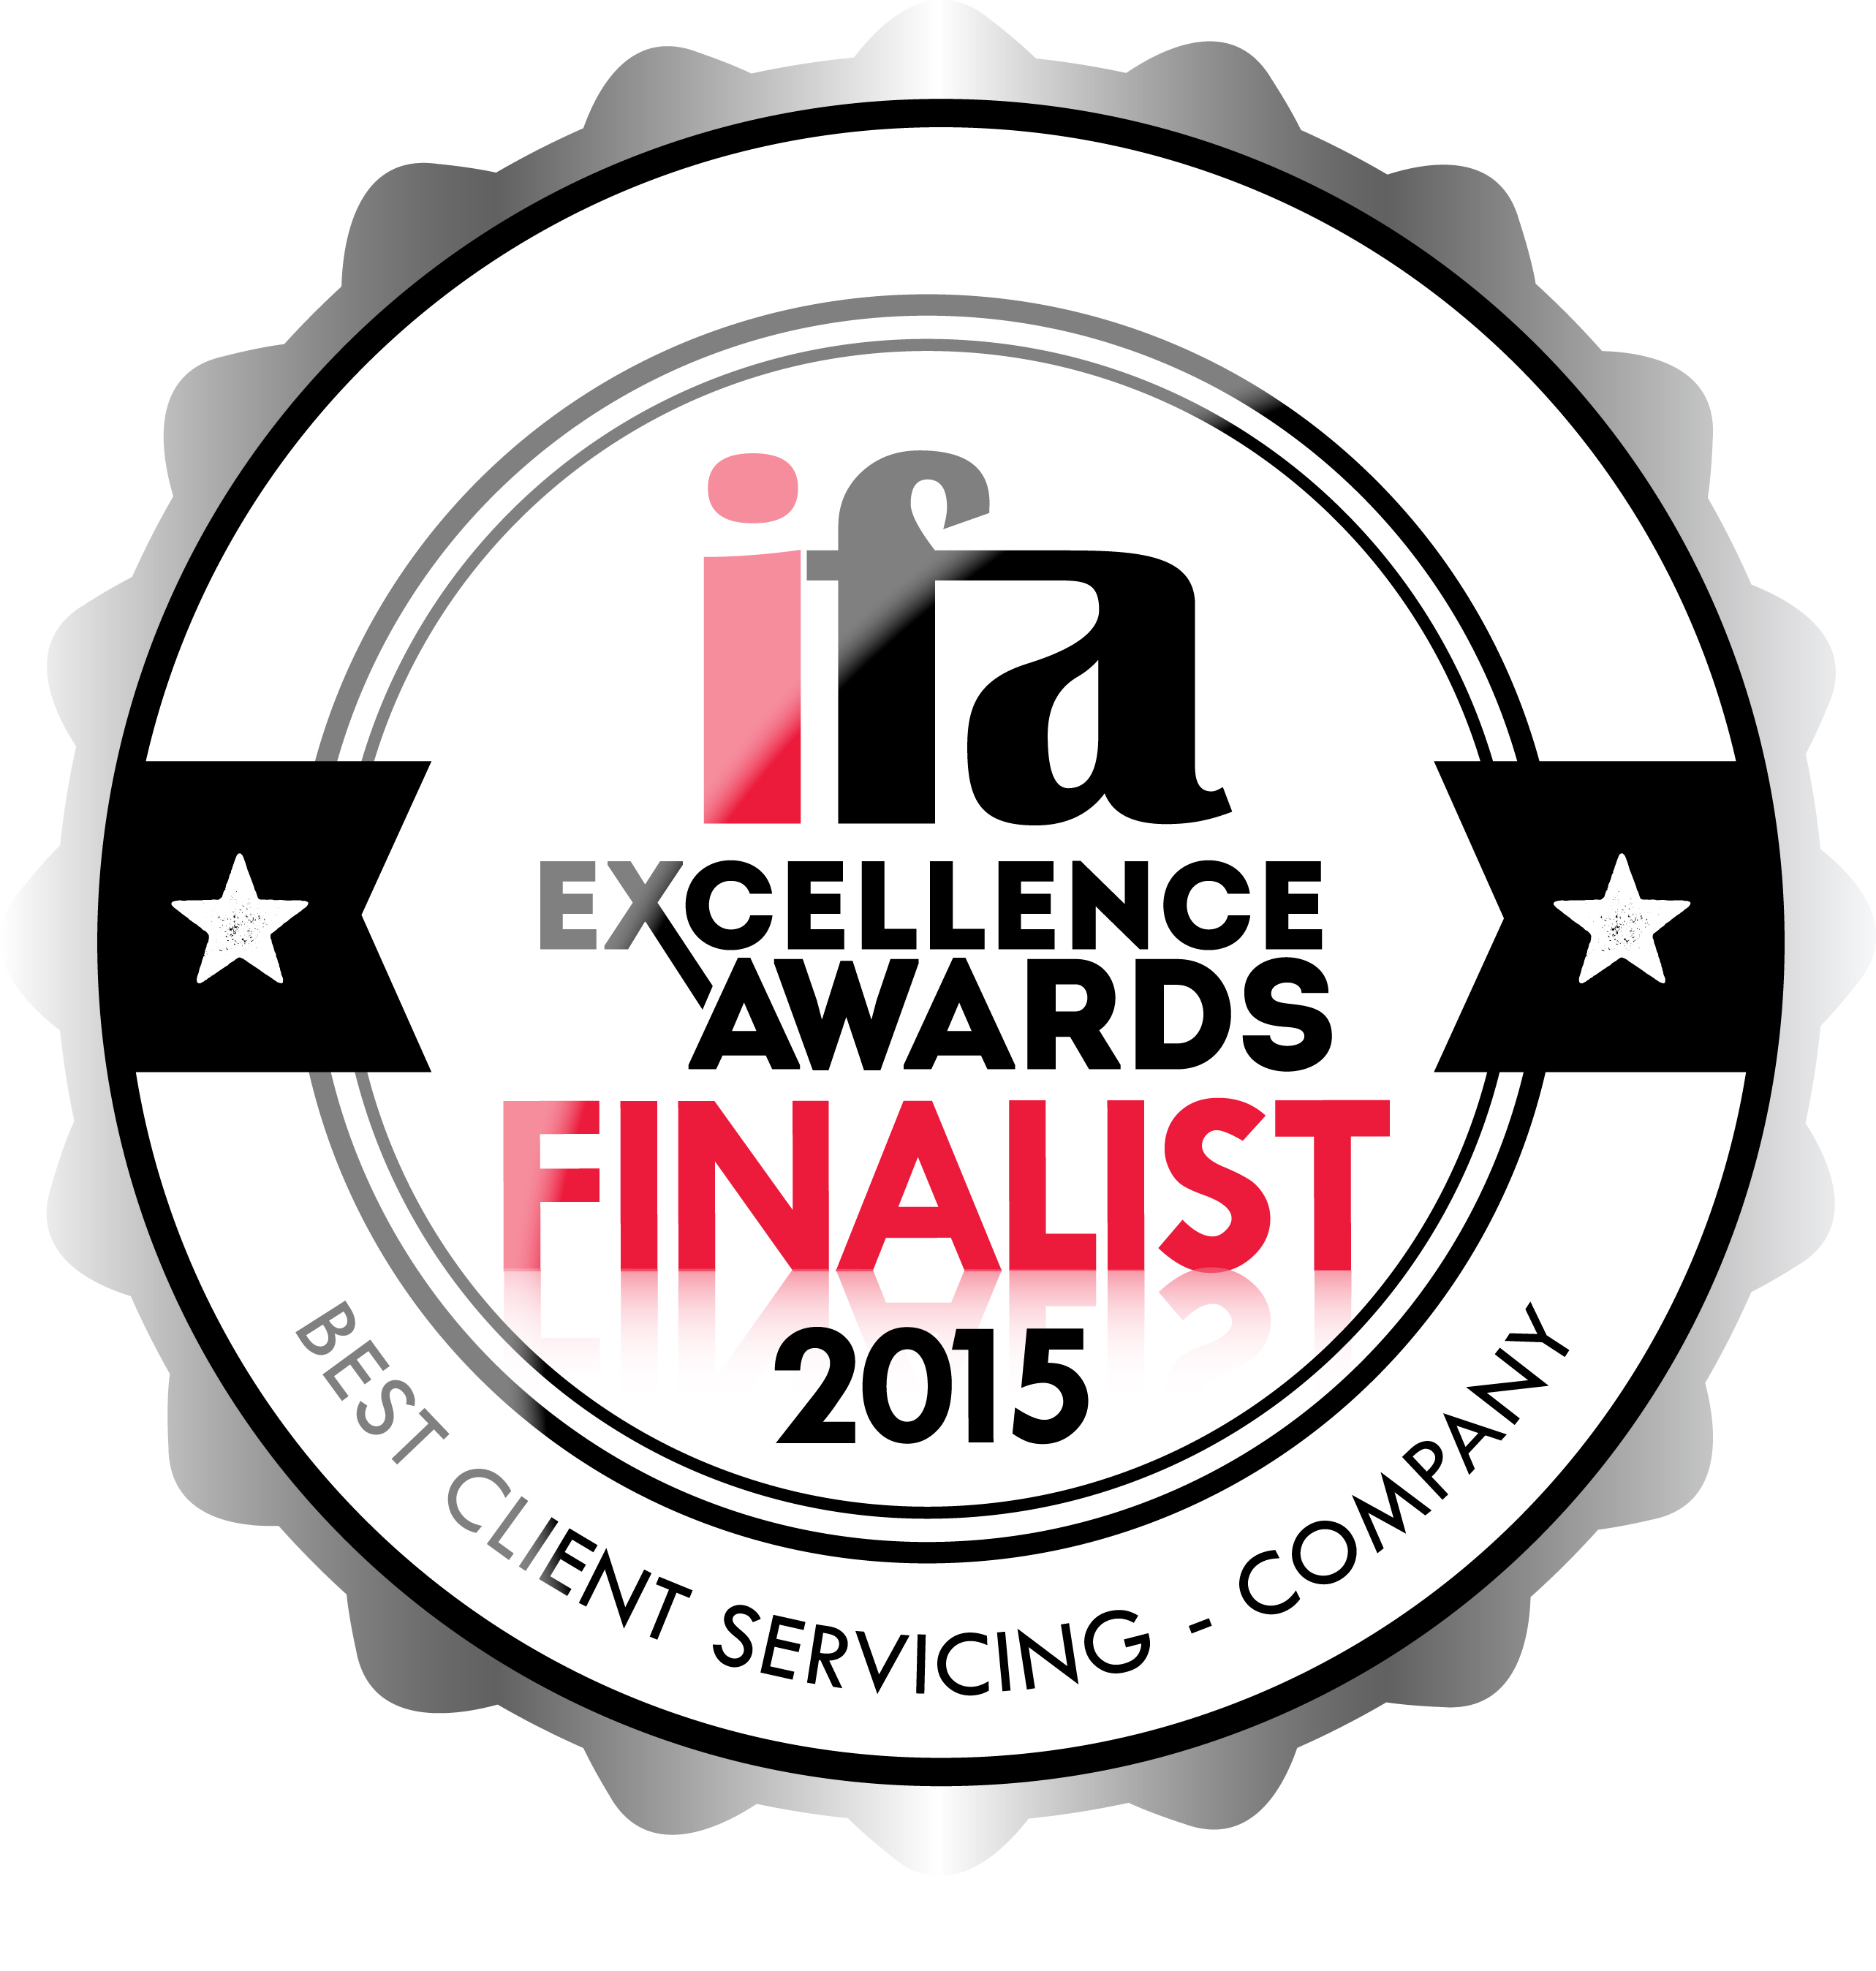 FINALIST_BEST_CLIENT_SERVICING_COMPANY (3) IFA Excellence Awards 2015 IFA Excellence Awards 2015 FINALIST BEST CLIENT SERVICING COMPANY 3